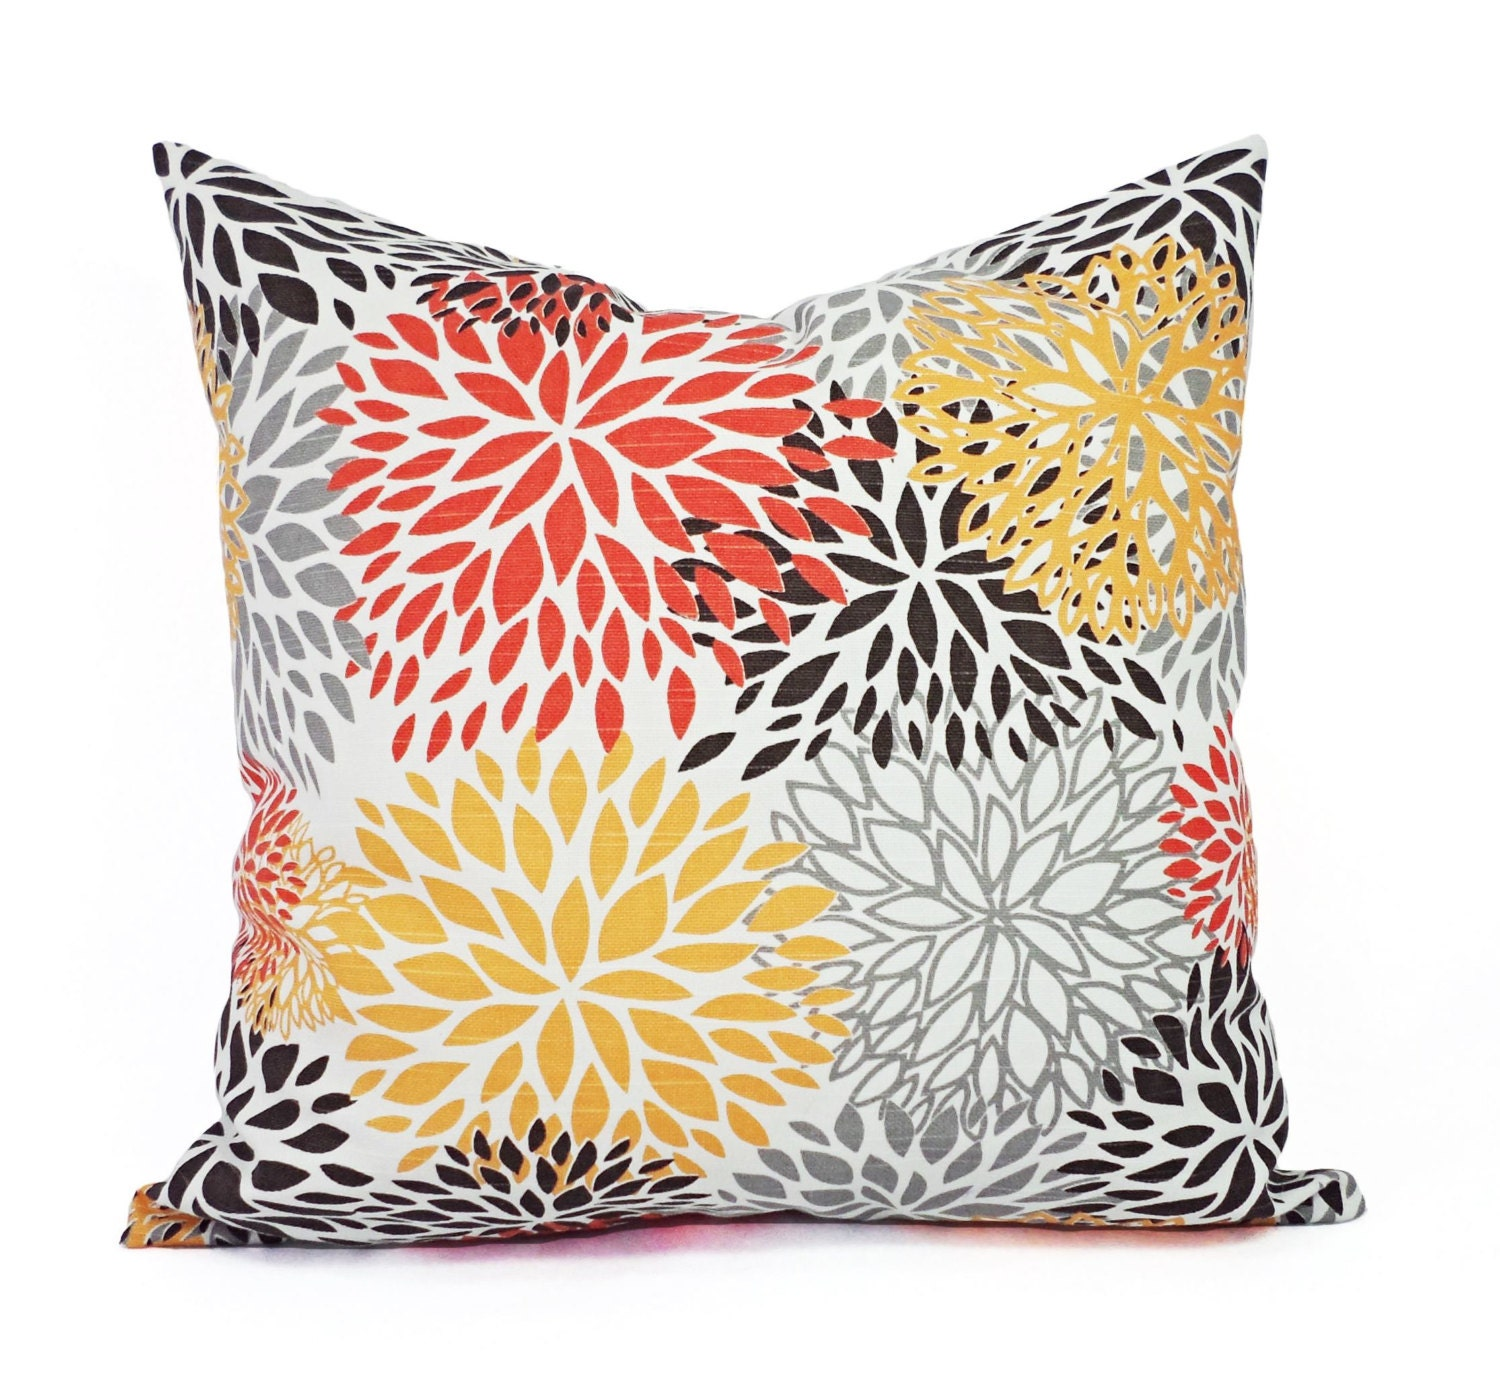 Orange Decorative Pillows Couch : Two Orange and Brown Couch Pillows Orange Throw Pillow Cover